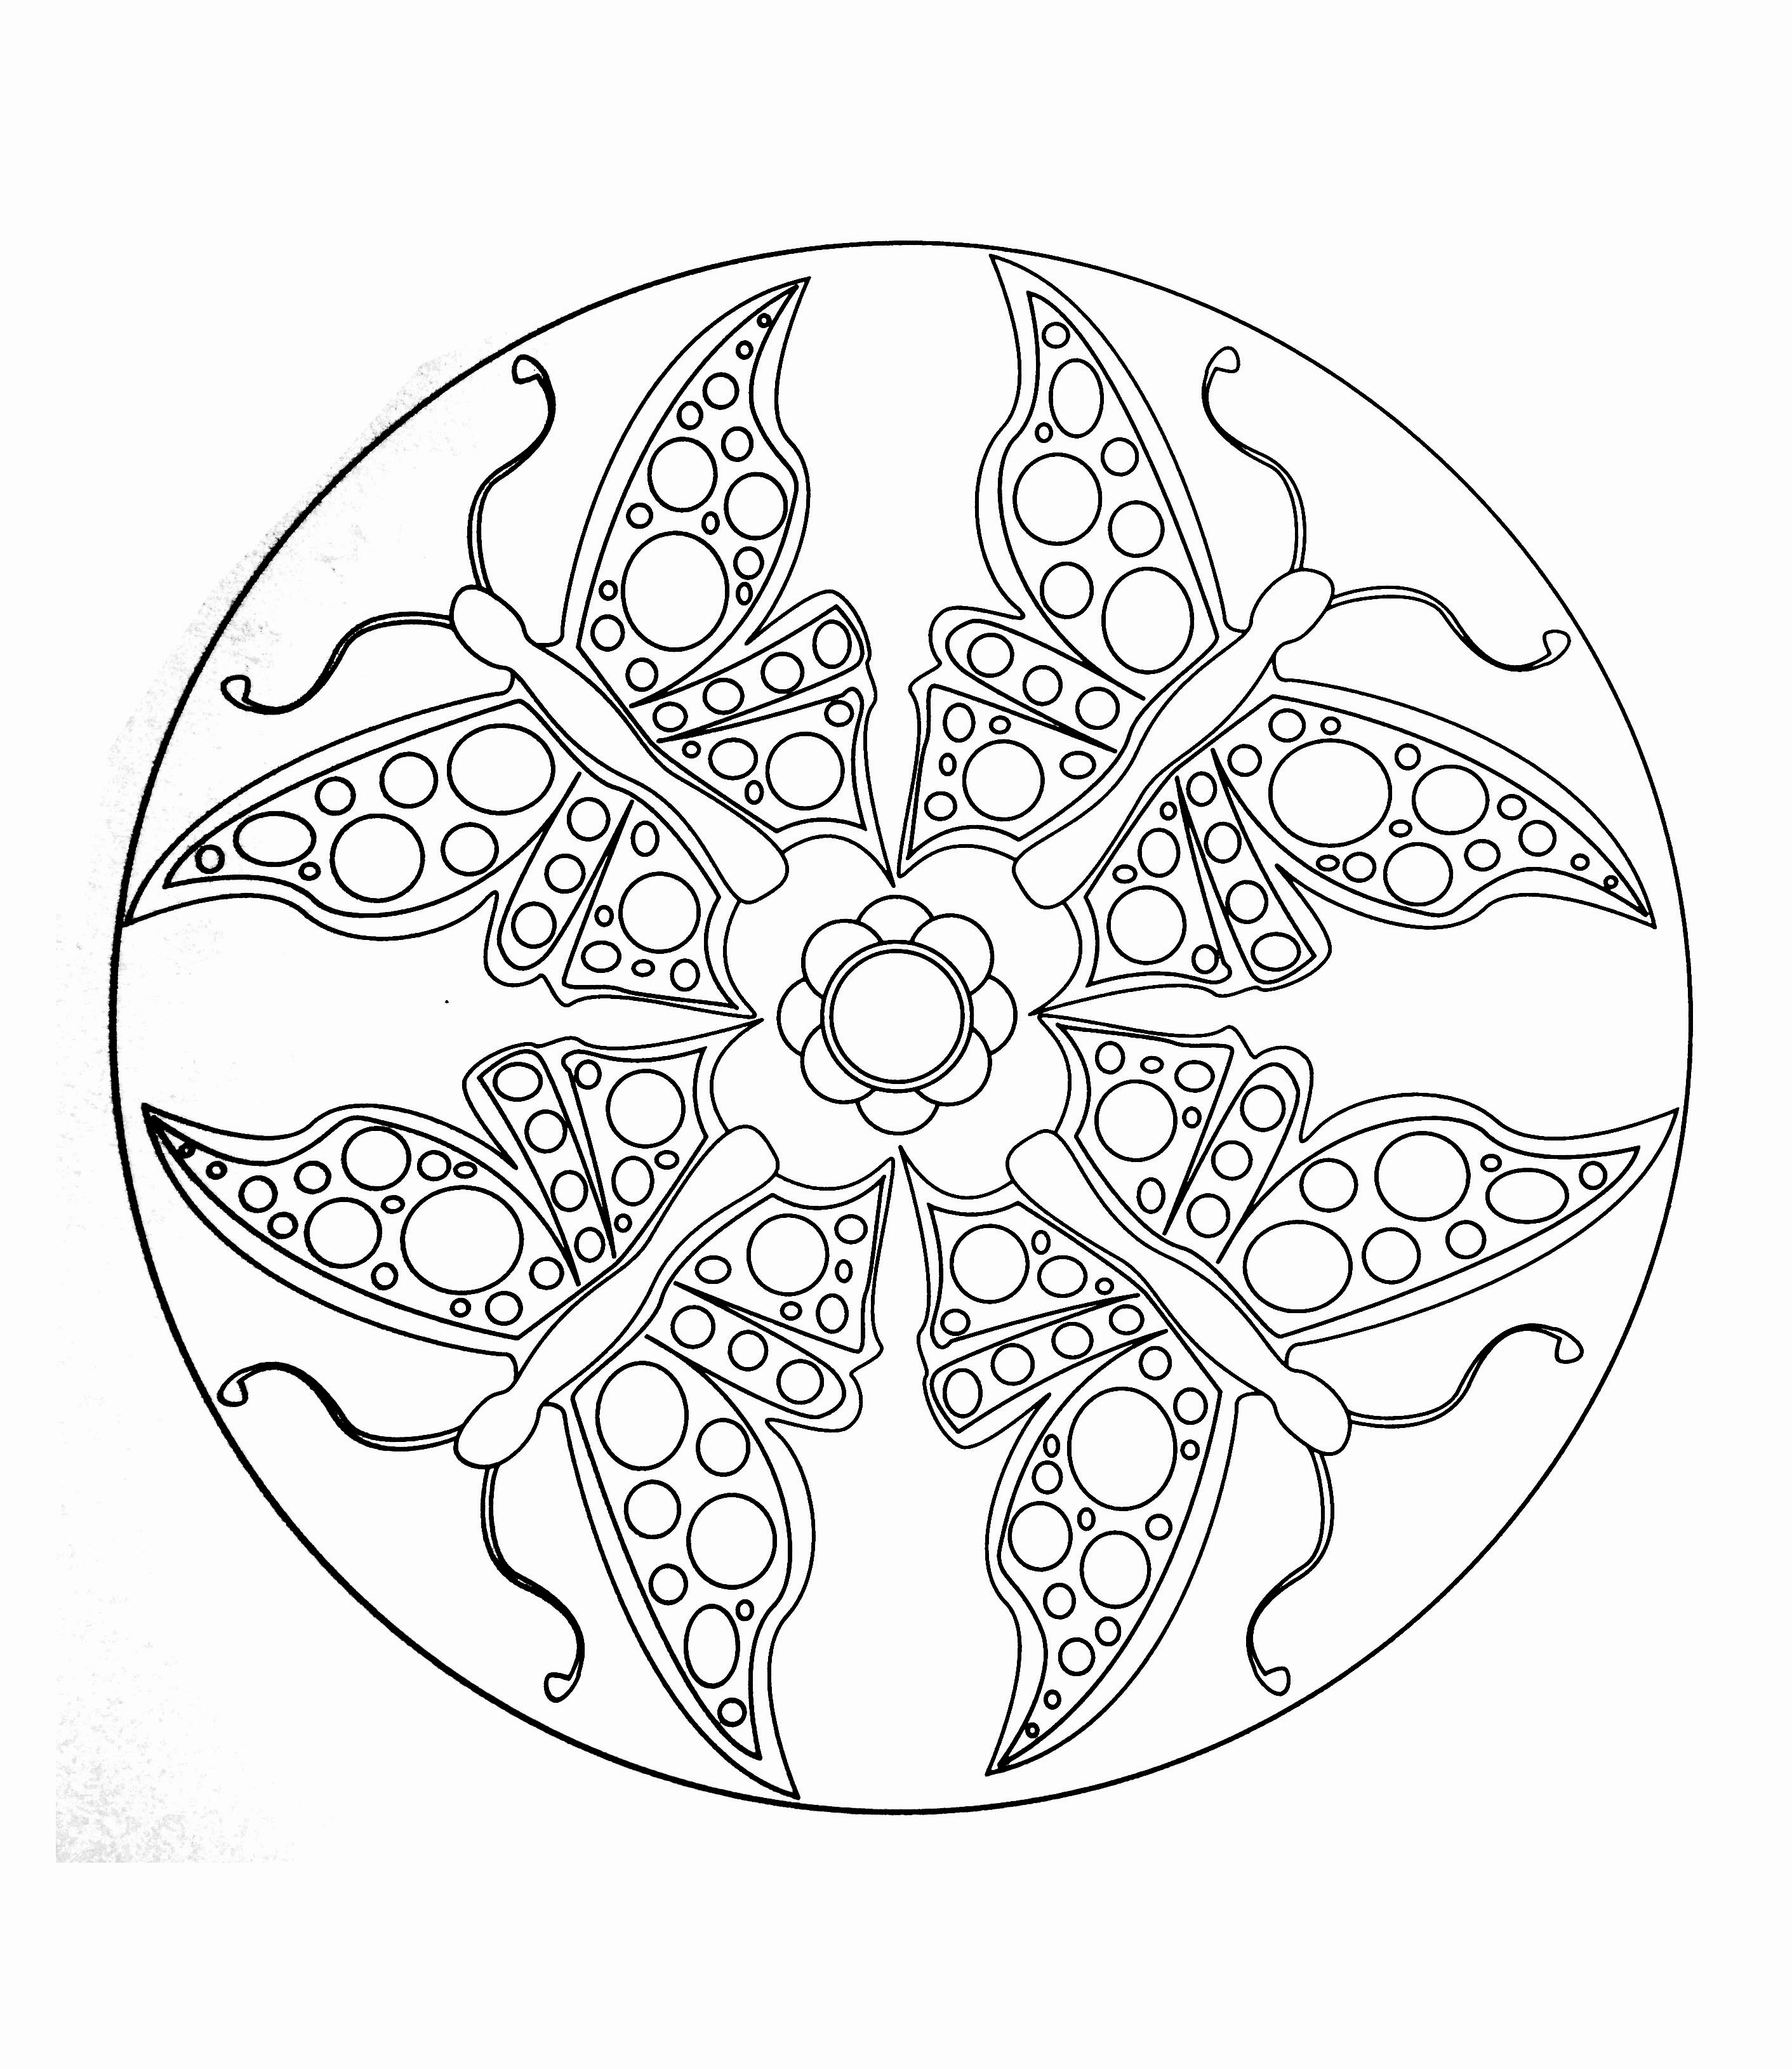 simple mandalas to color simple mandala 20 malas coloring pages for kids to simple to mandalas color